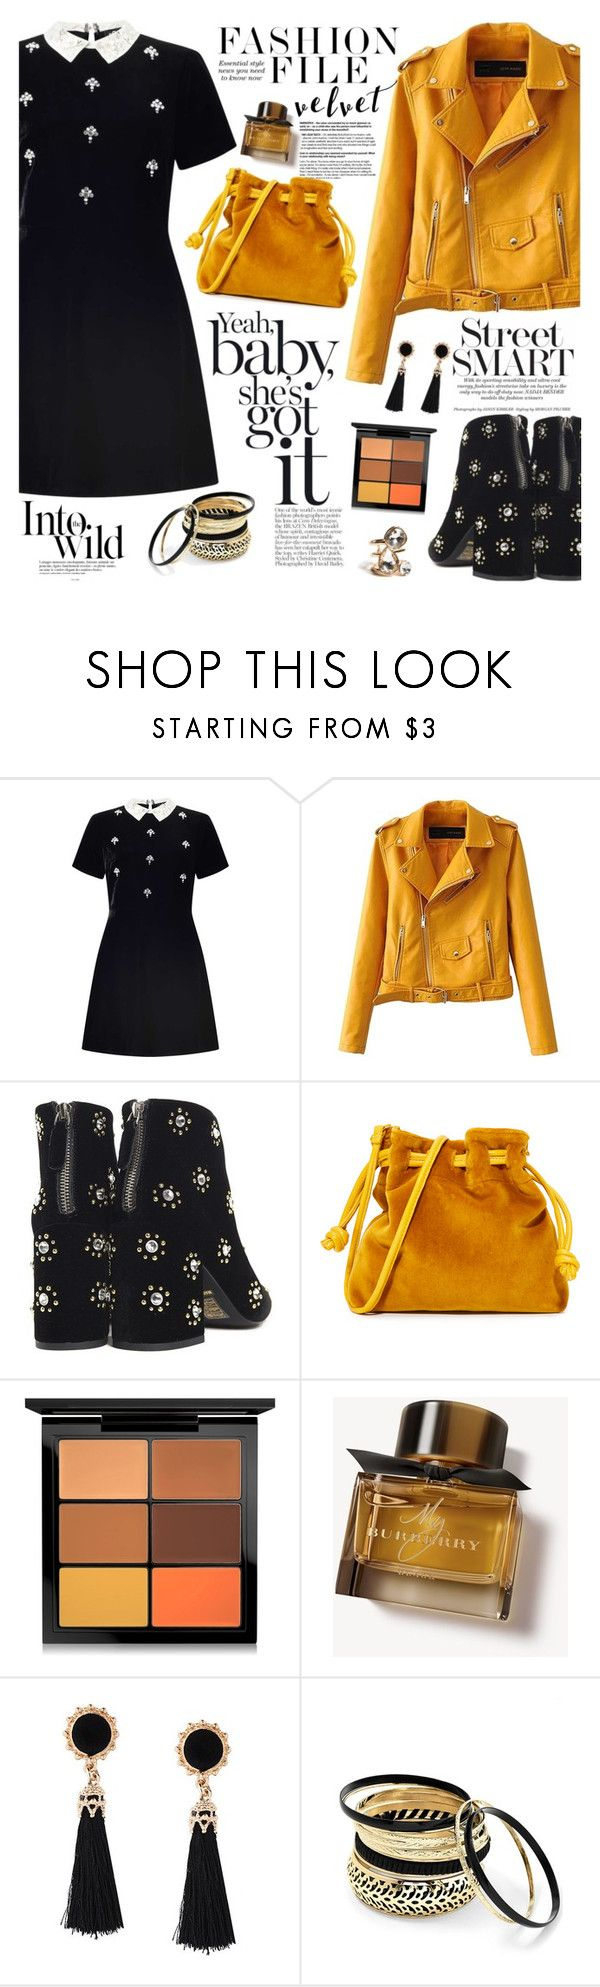 """""""Crushing on Velvet"""" by martinabb ❤ liked on Polyvore featuring Miss Selfridge, Senso, Clare V., MAC Cosmetics, Burberry, Anja, Venus and GUESS"""